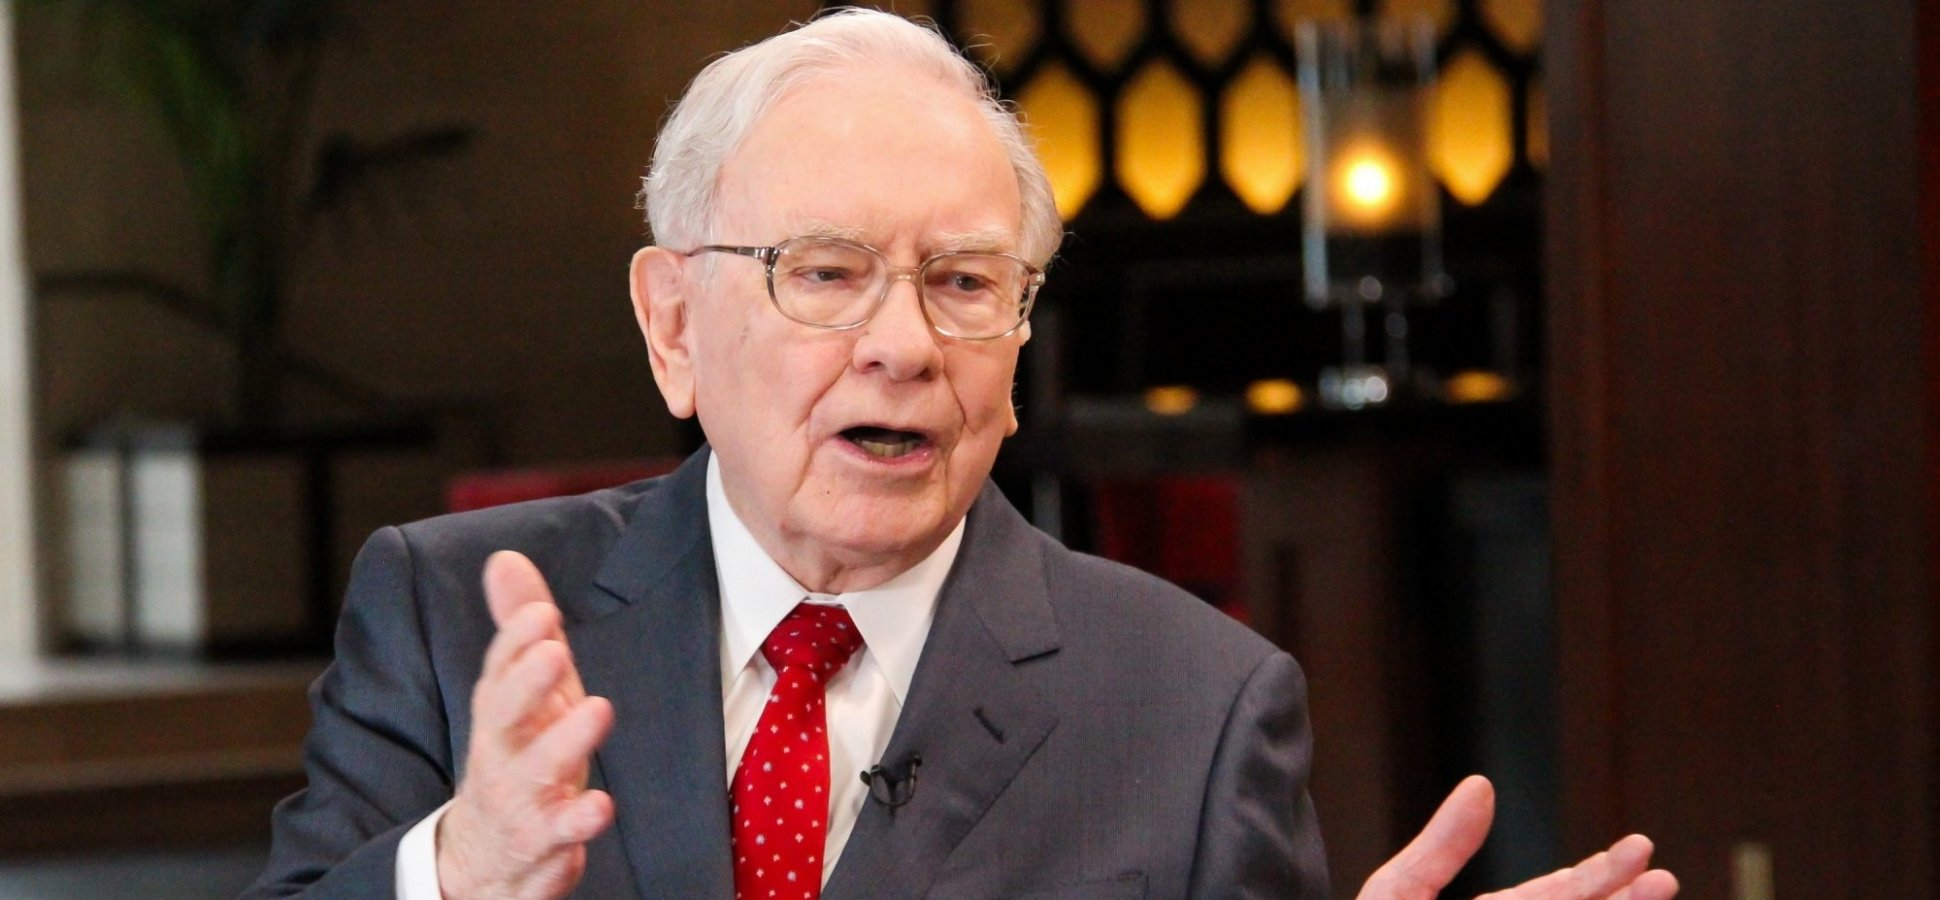 6 Common Sense Things Warren Buffett Says You Must Do to Be Happy and Successful